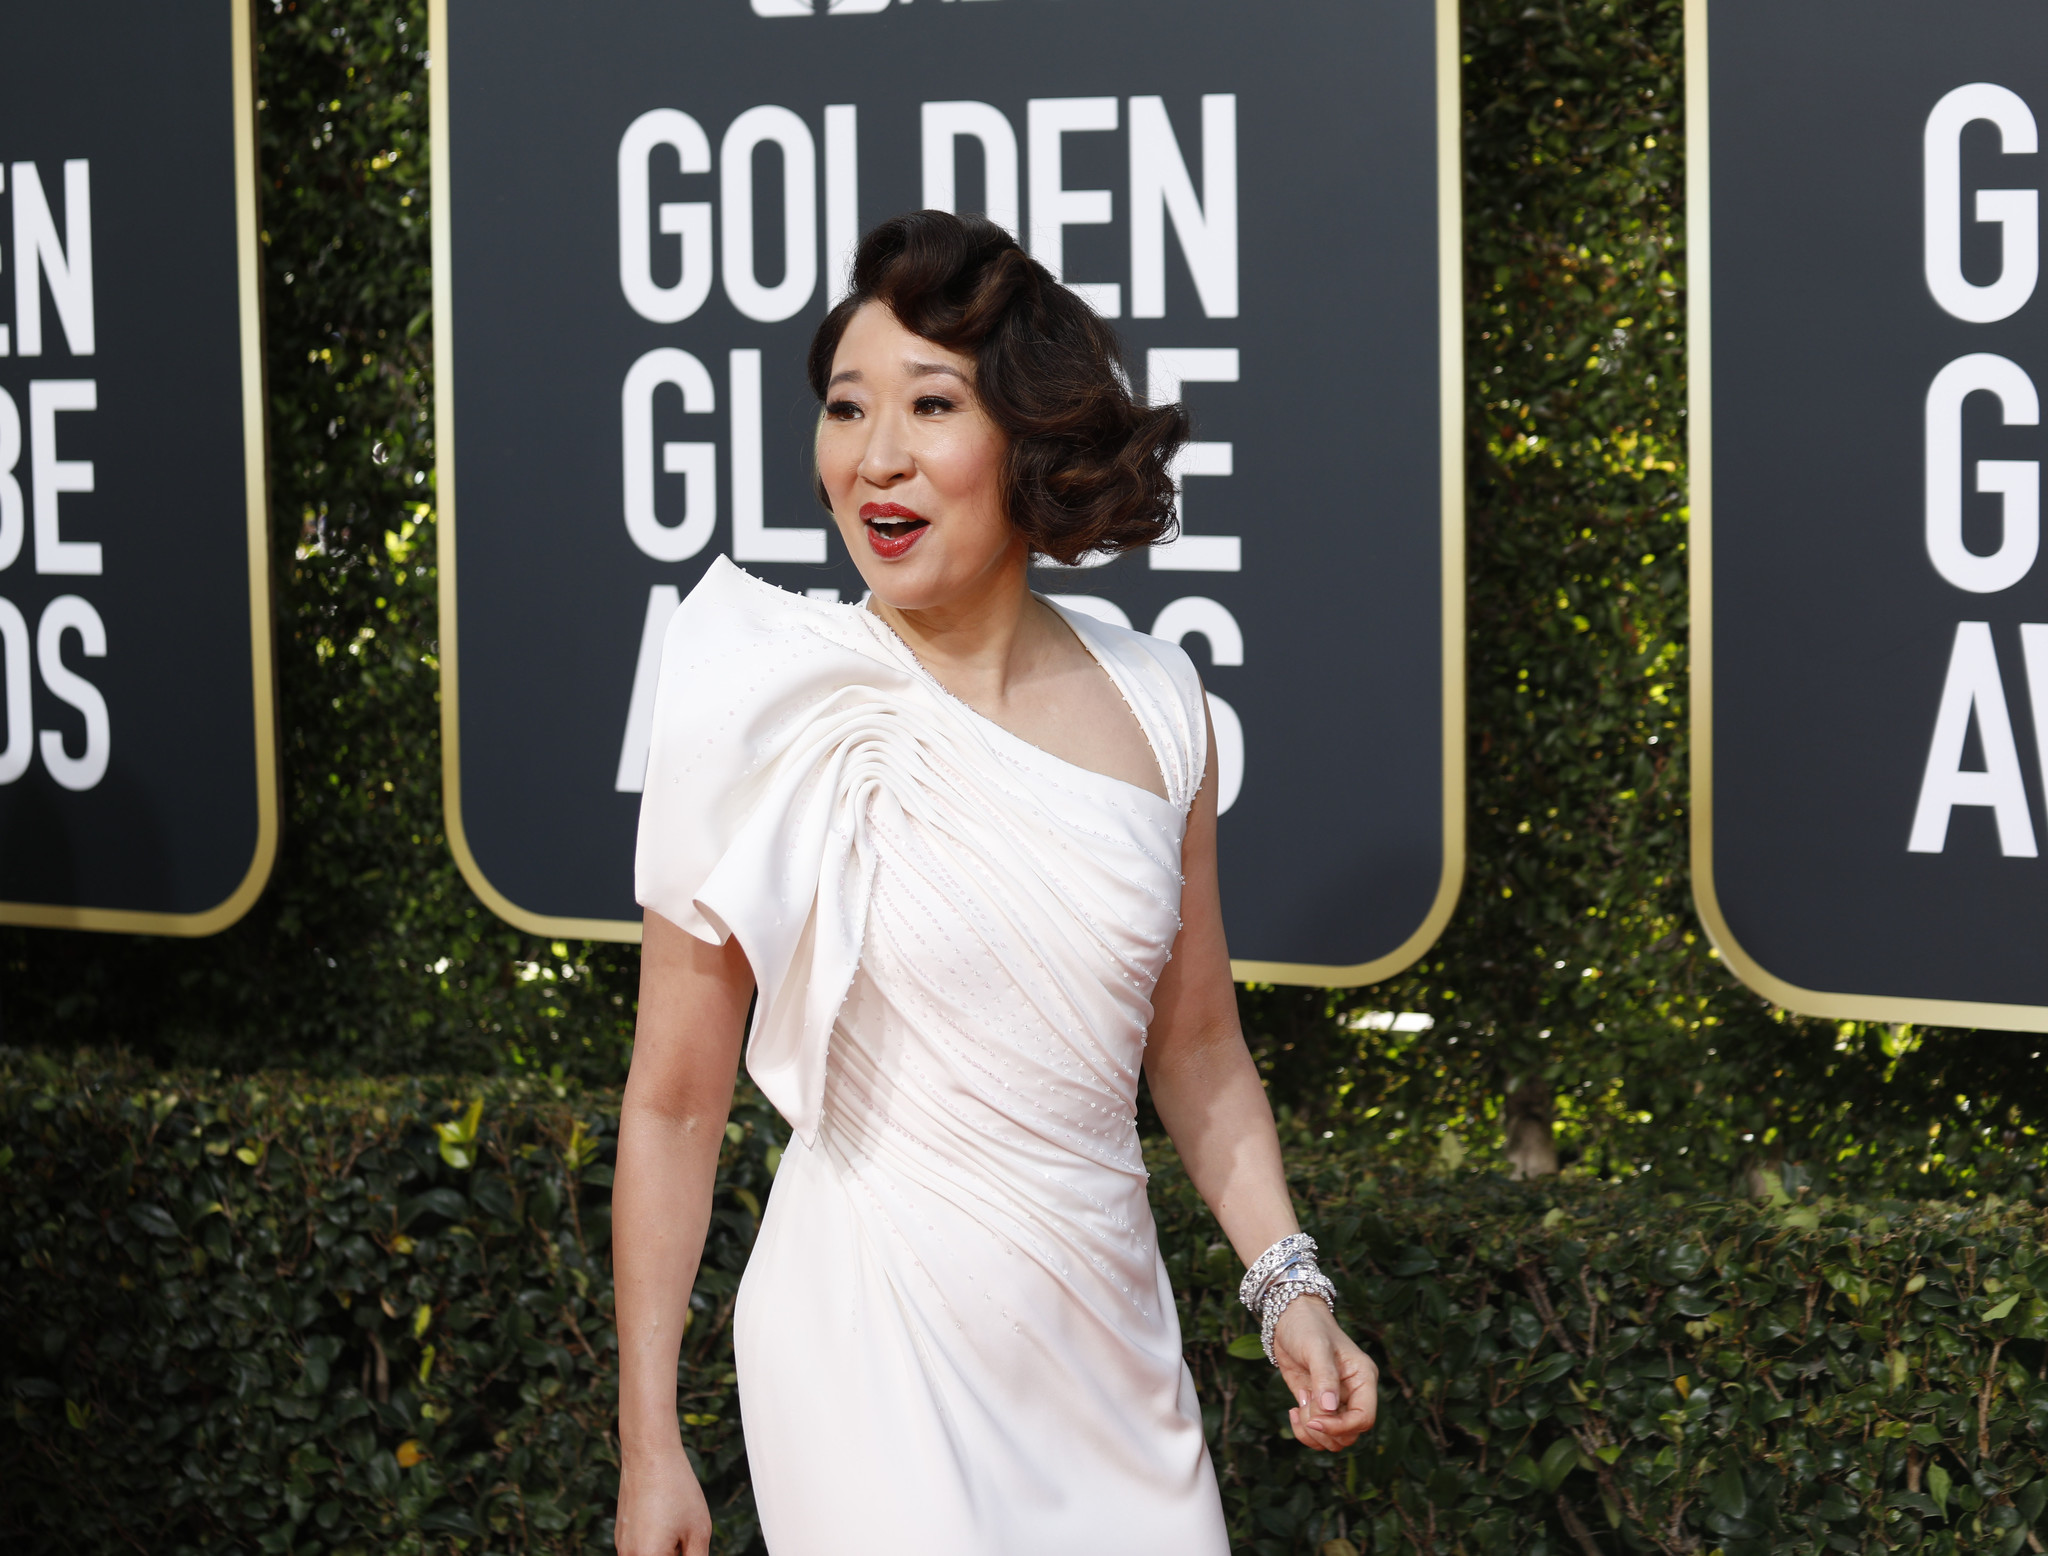 Sandra Oh at the 76th Golden Globes.